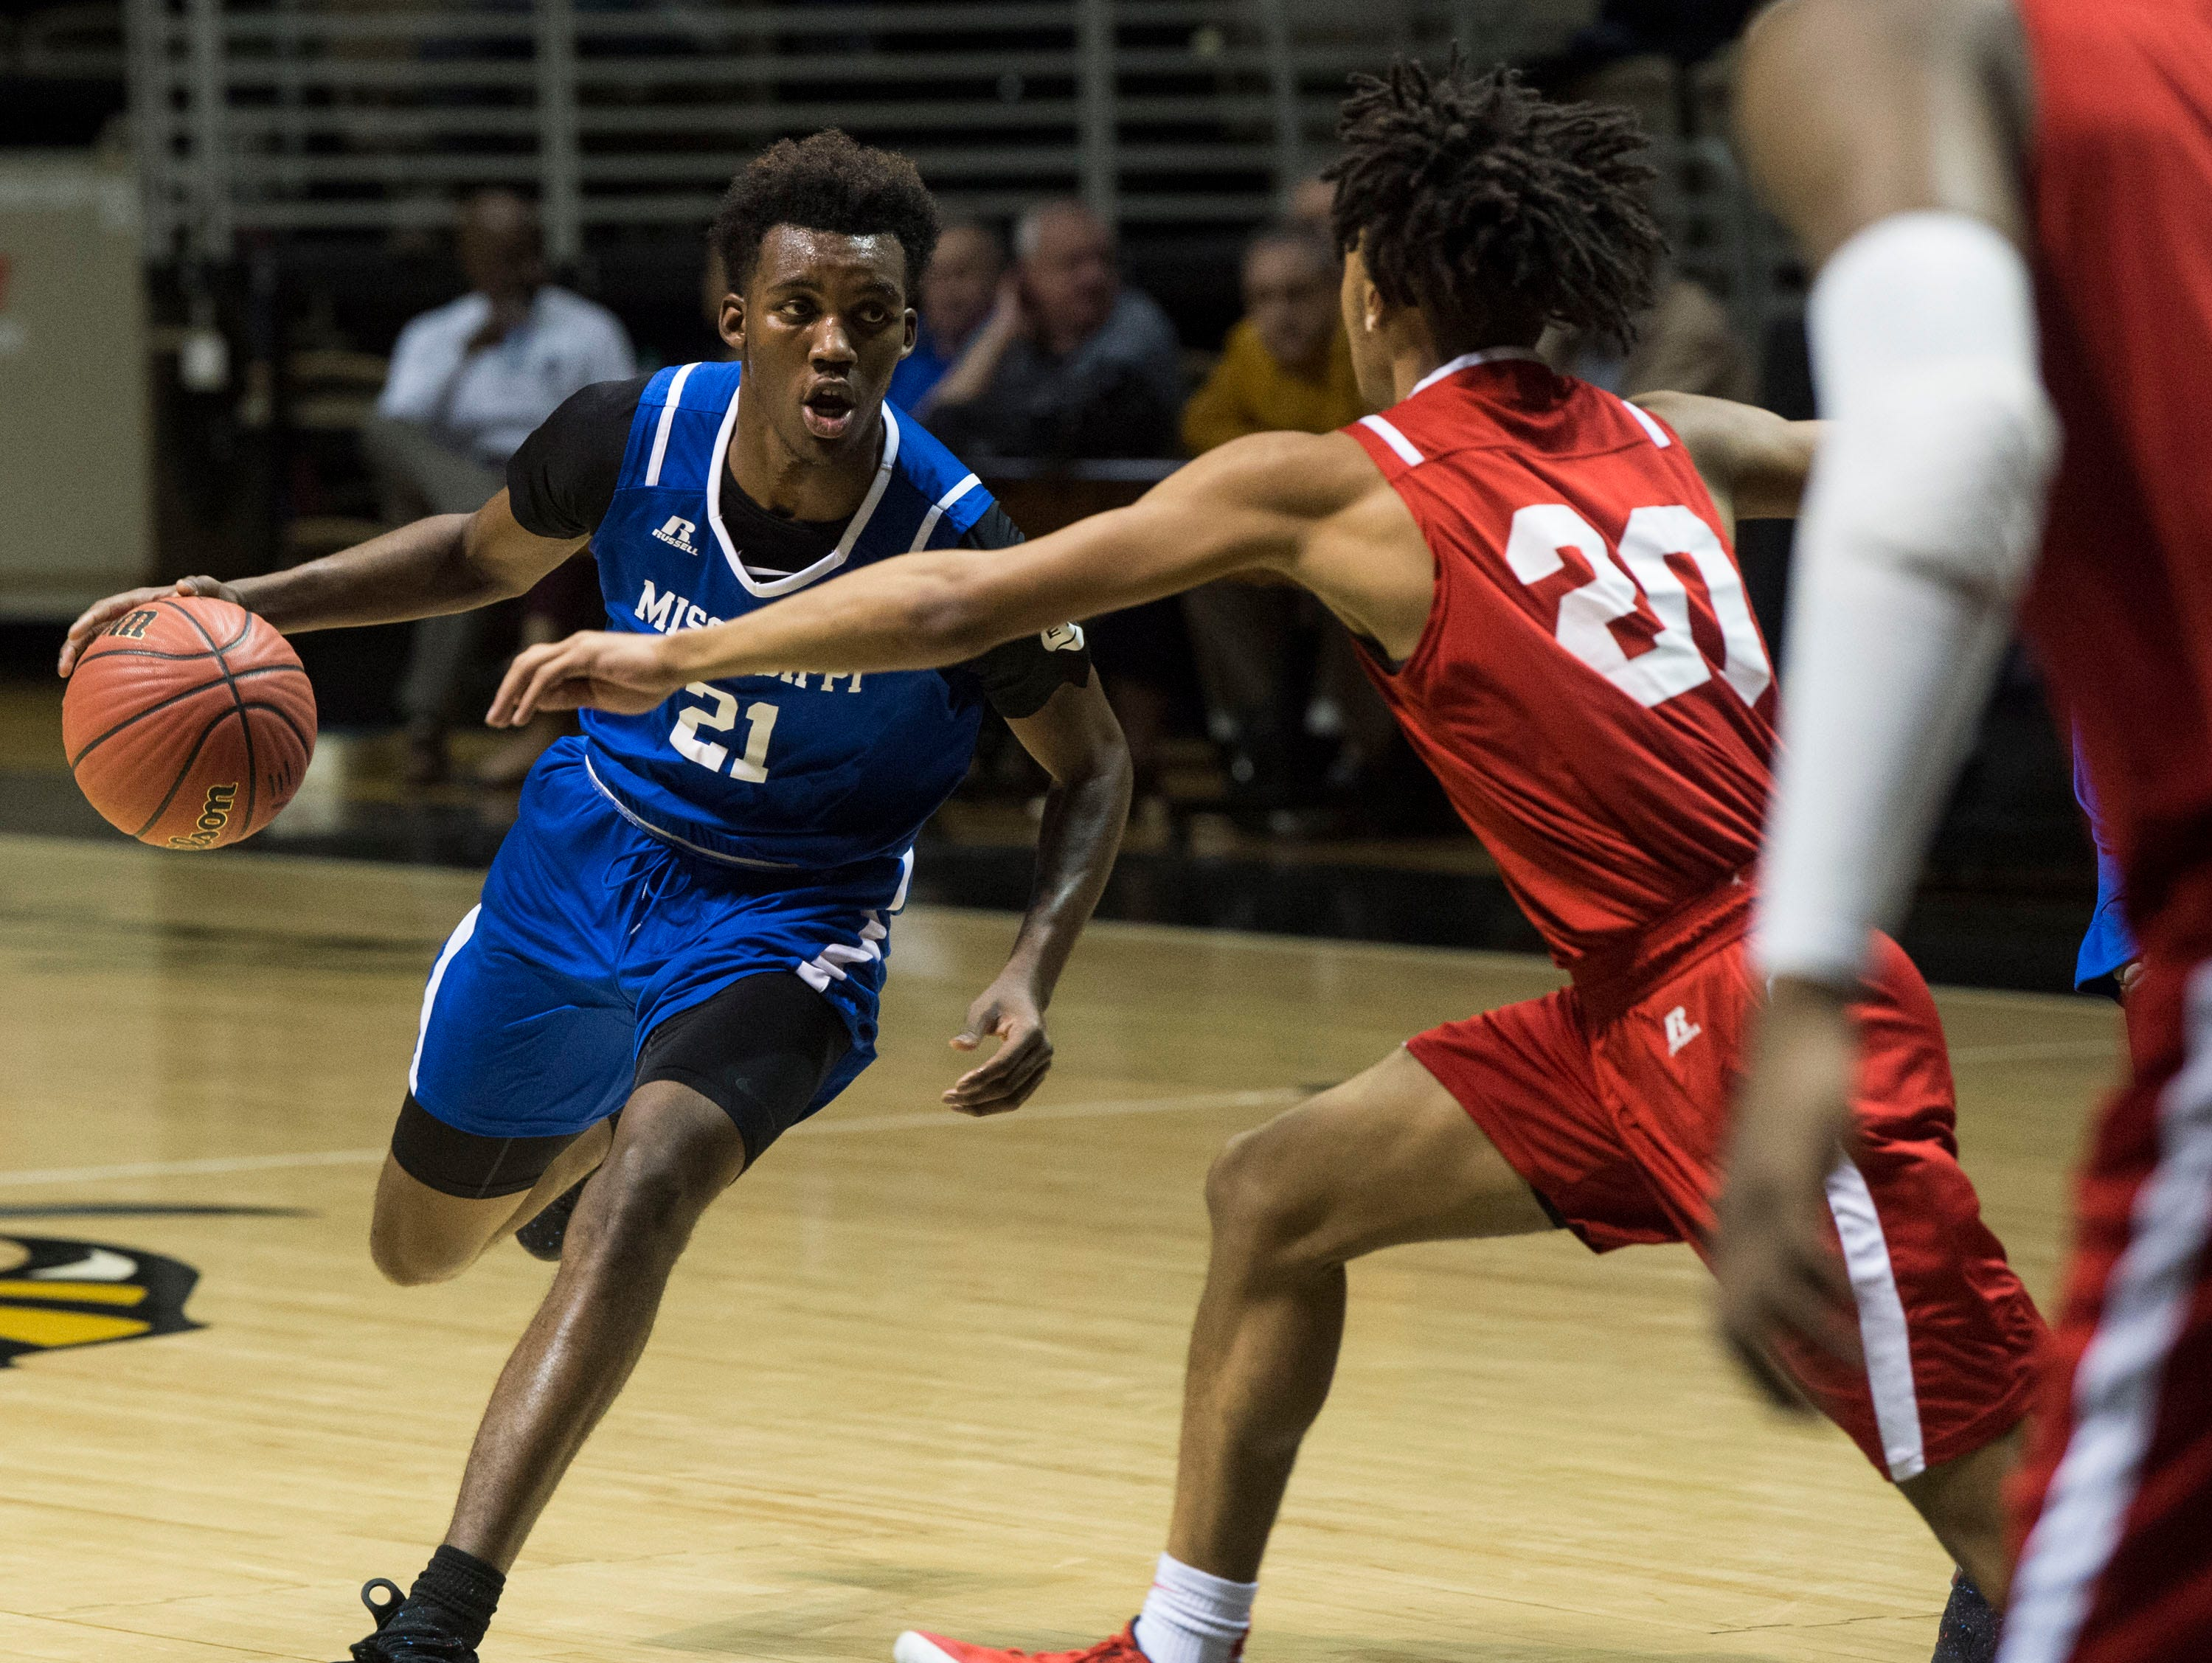 Mississippi's Jaylen Forbes (21) drives to the basket during the Alabama-Mississippi All-Star game at the Dunn-Oliver Acadome in Montgomery, Ala., on Friday, March 15, 2019. Alabama All-stars defeated the Mississippi All-stars 107-90.